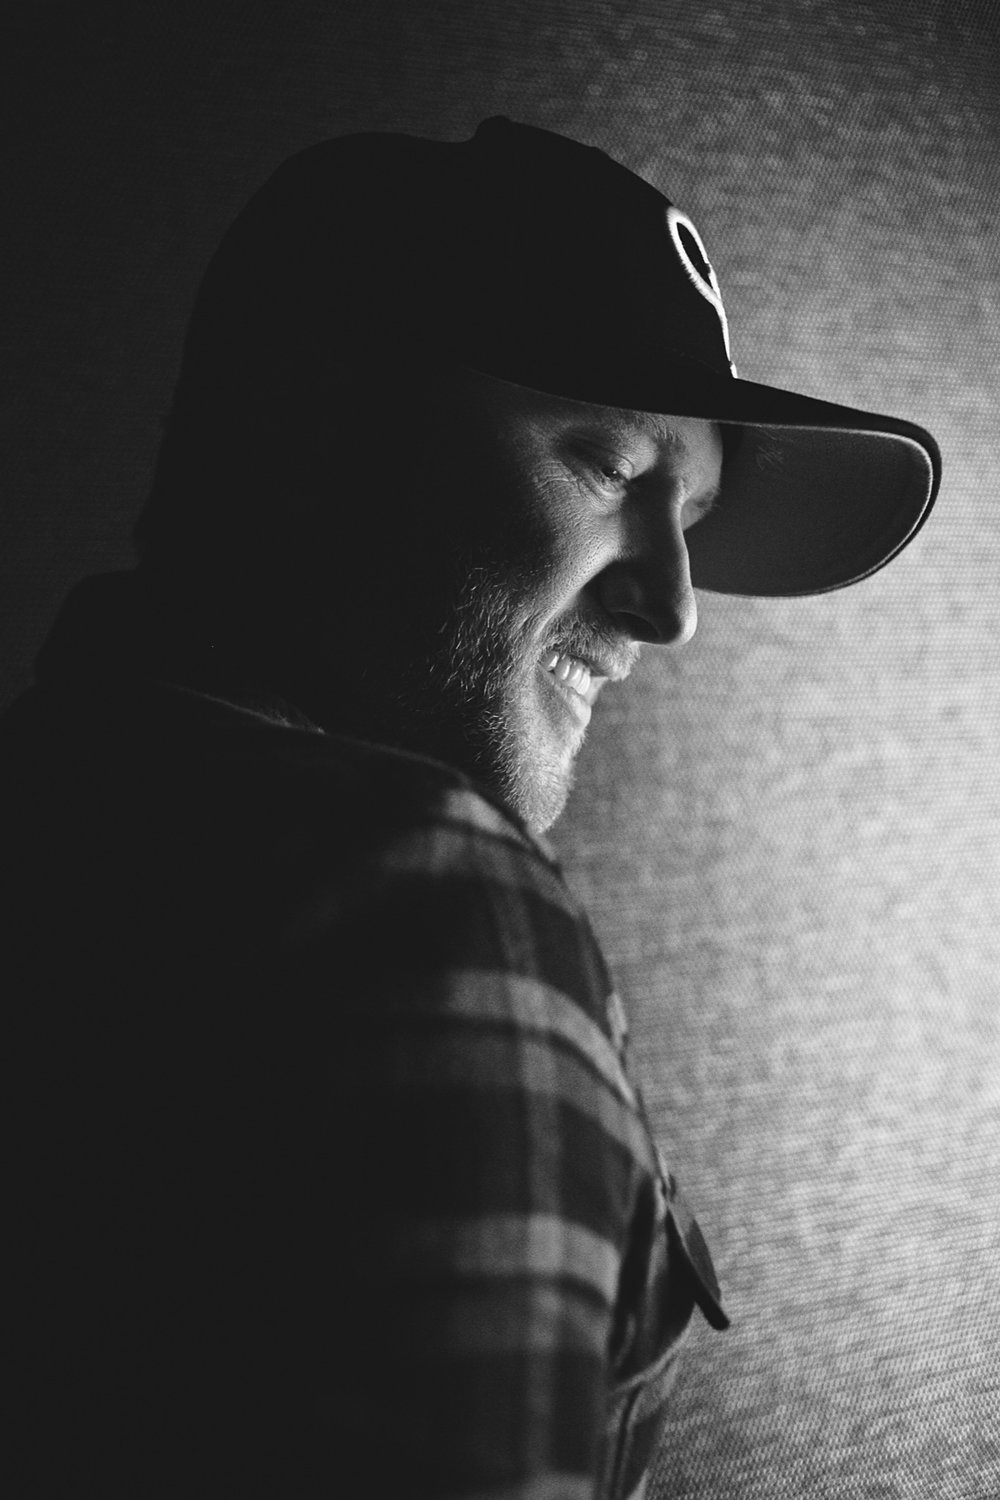 Cole Swindell at iHeartRadio